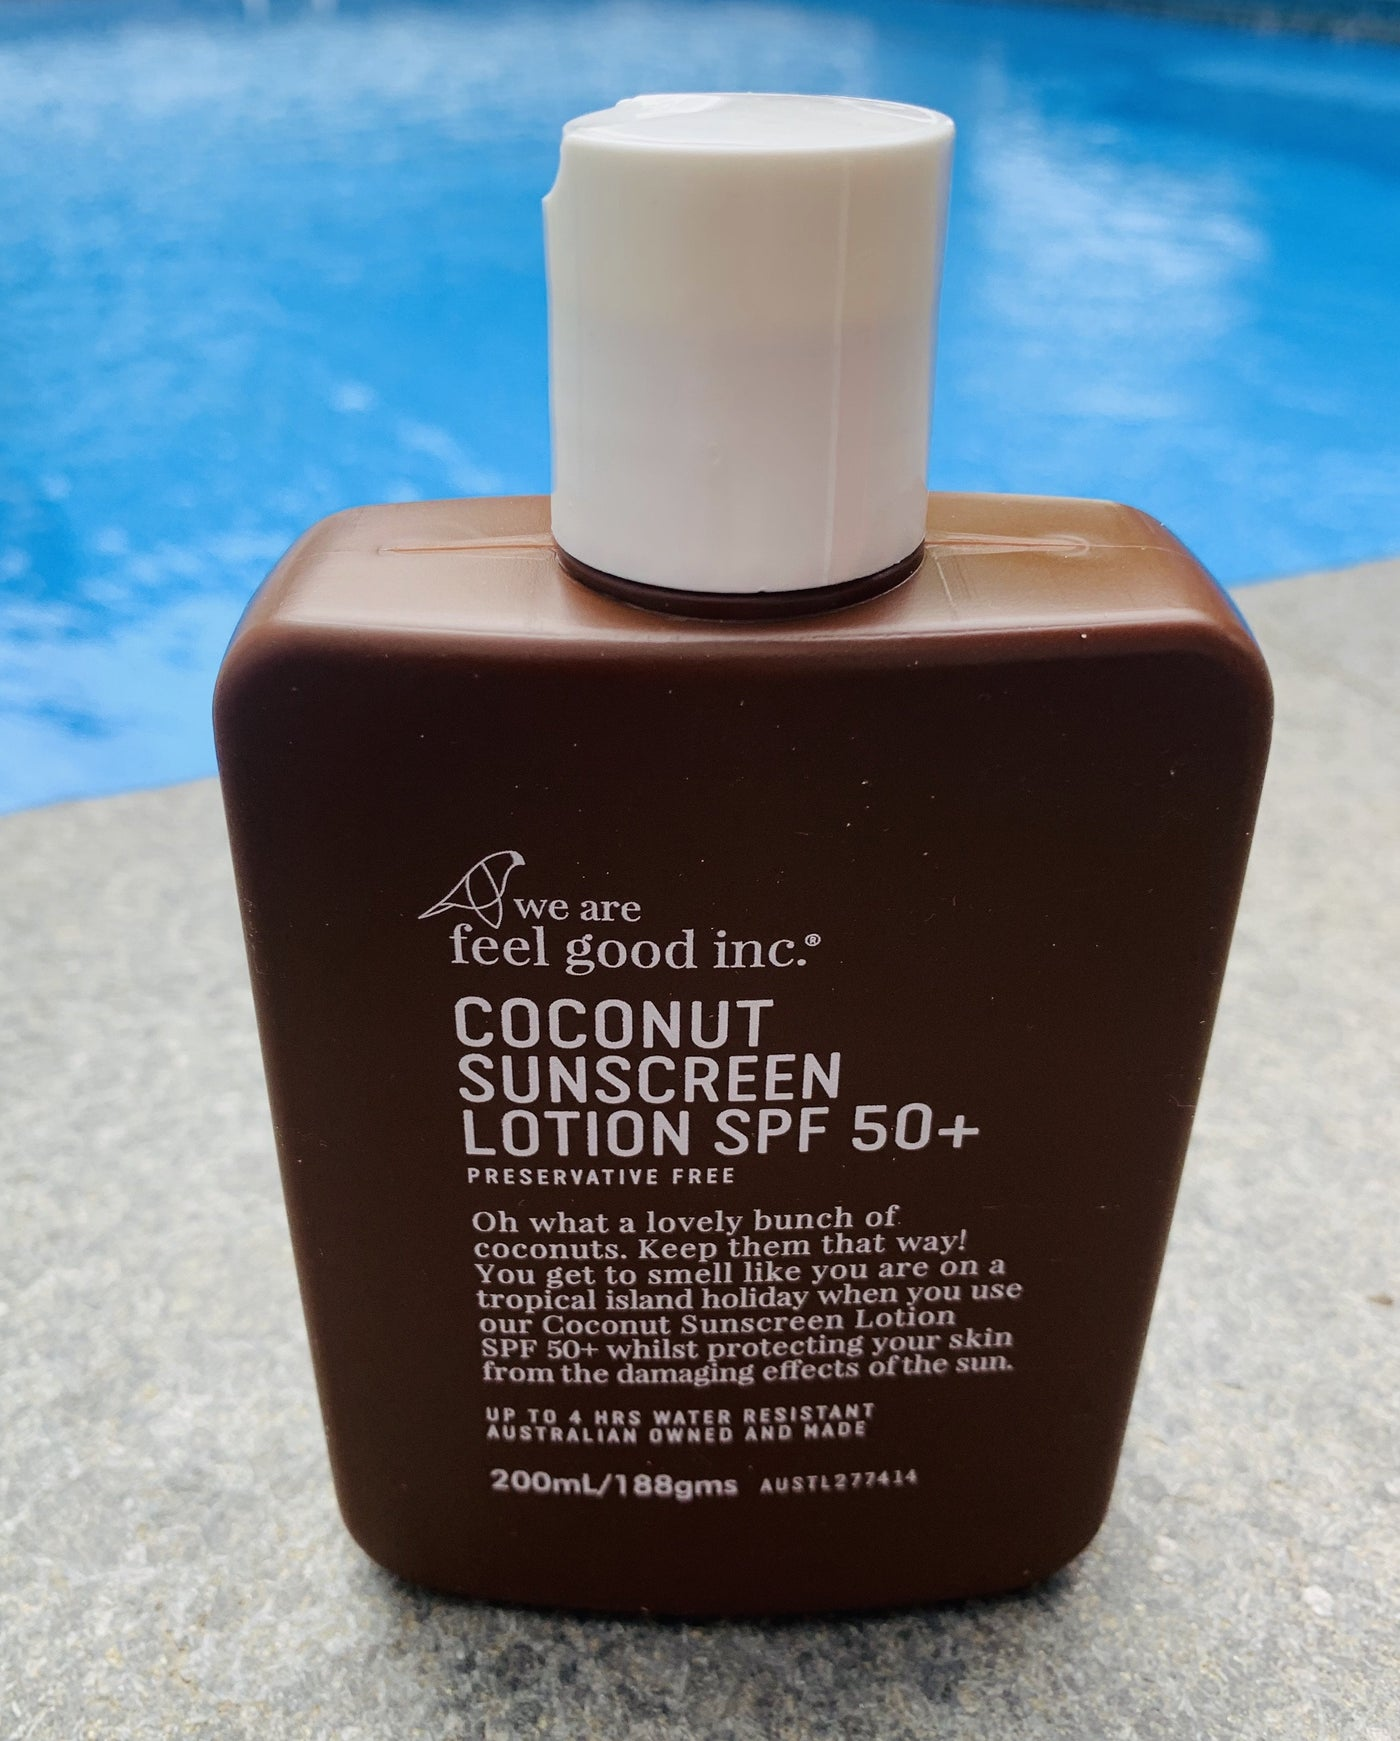 We Are Feel Good Inc. Coconut Sunscreen Lotion SPF 50+ 200mL